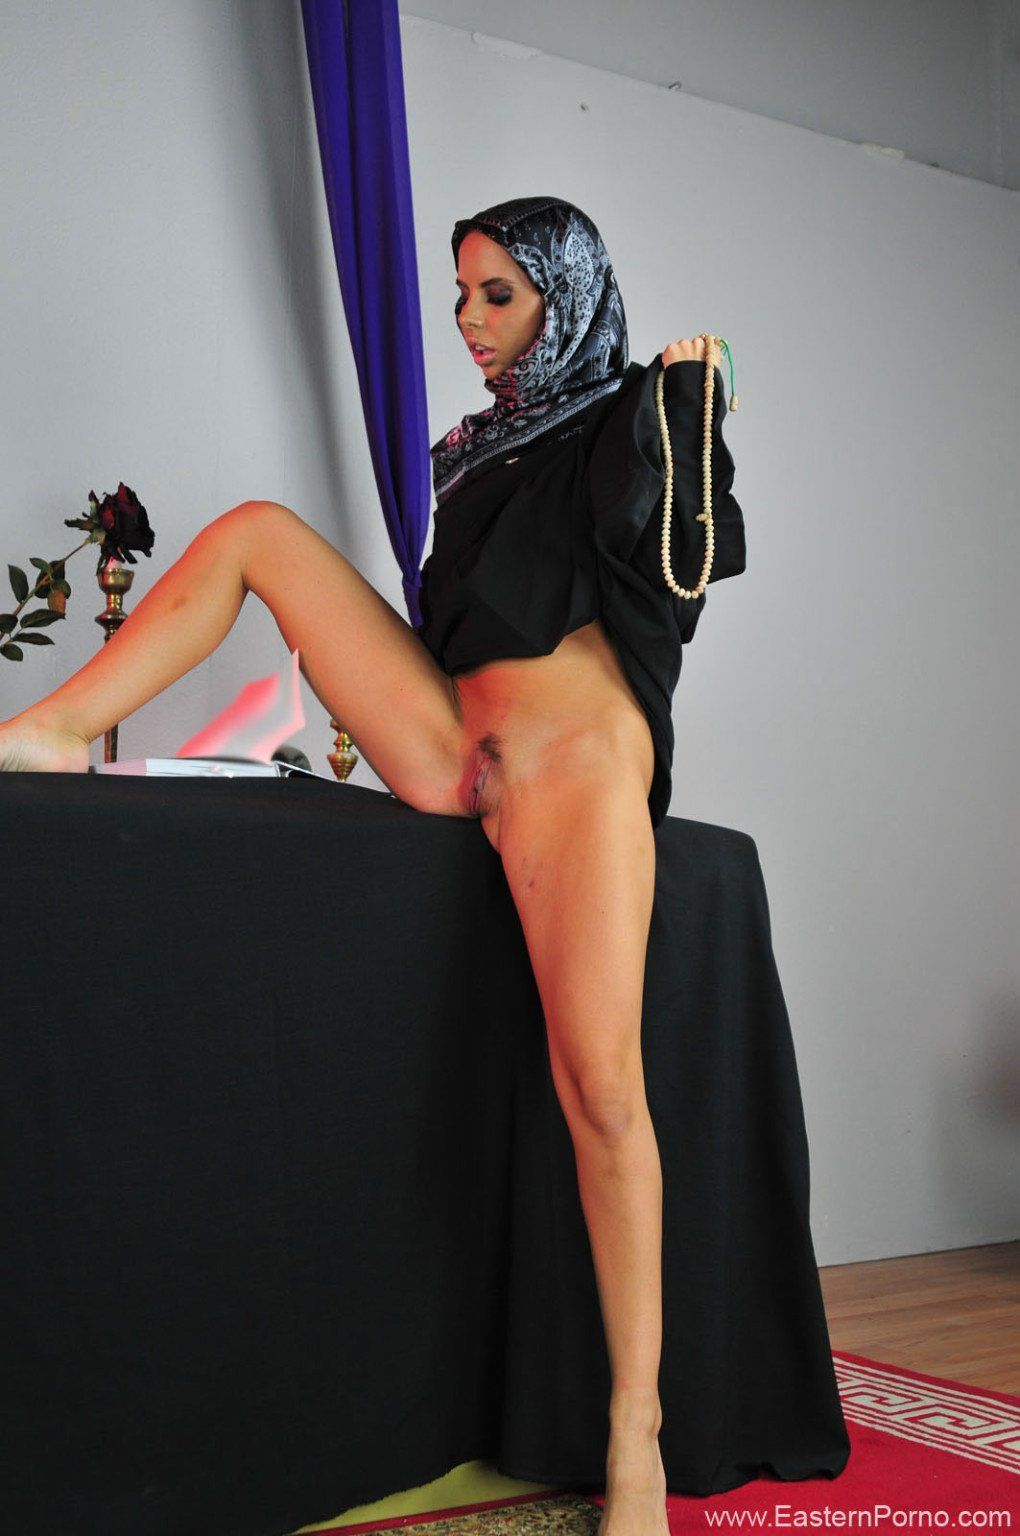 Hijab nude muslim women naked in public recommend you